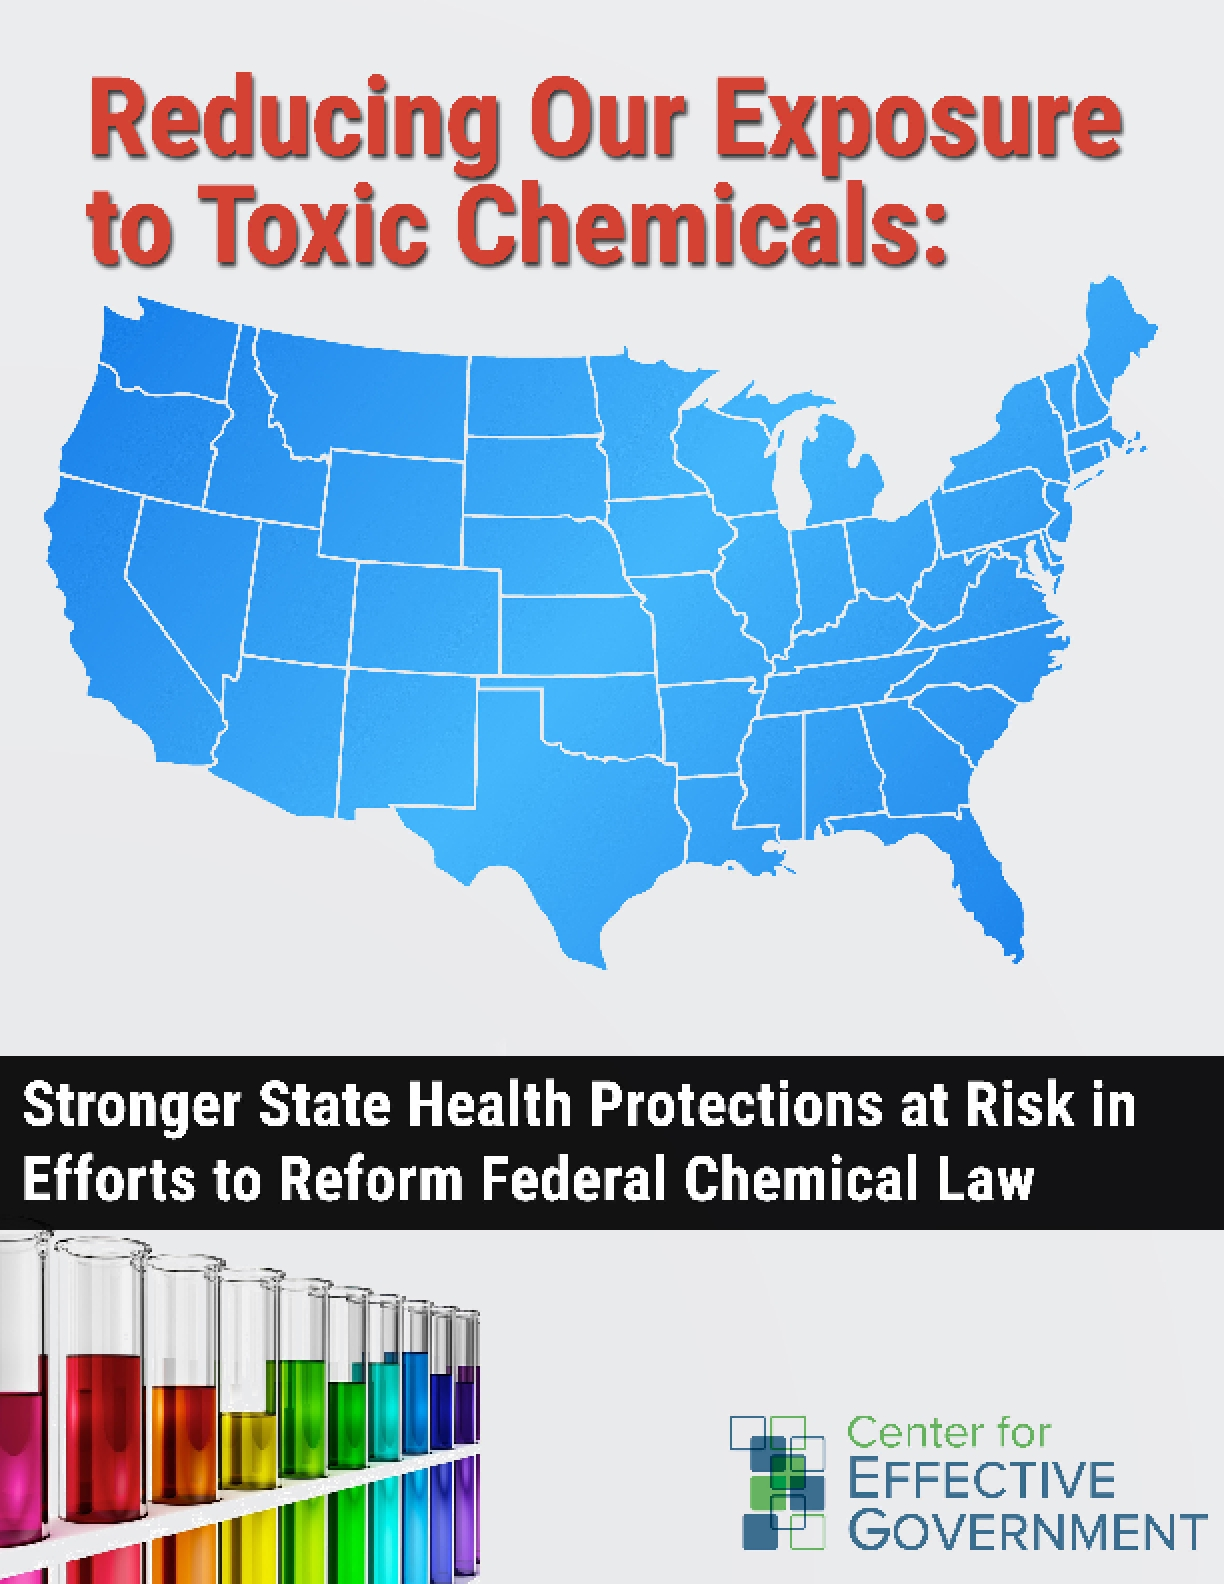 Reducing Our Exposure to Toxic Chemicals: Stronger State Health Protections at Risk